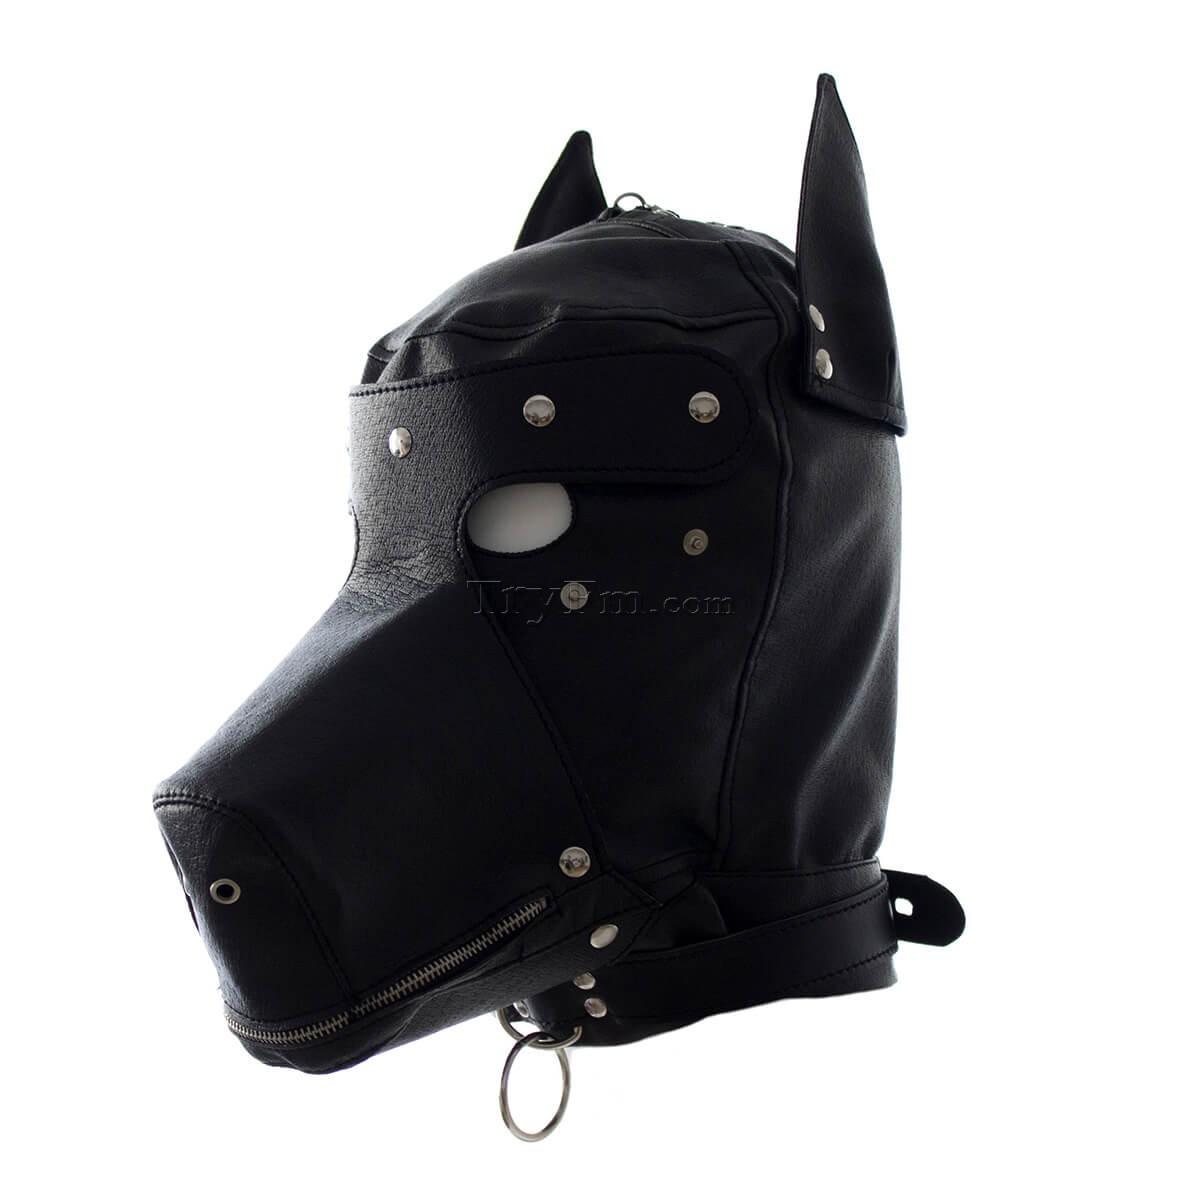 15-BDSM-Hood-with-Removable-Muzzle1.jpg